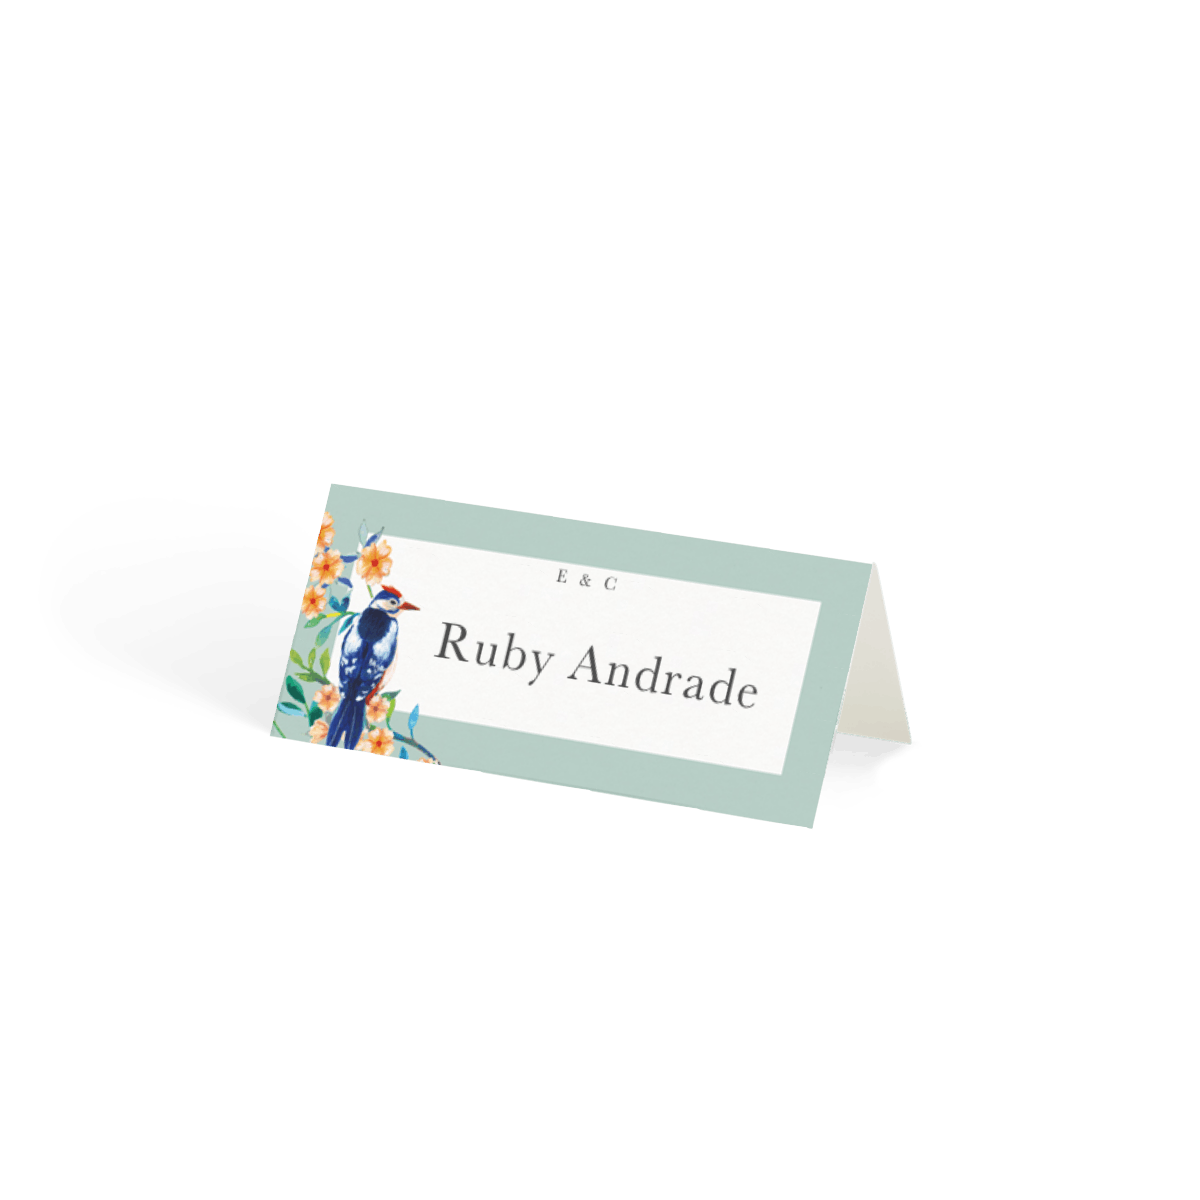 Https%3a%2f%2fwww.papier.com%2fproduct image%2f82310%2f8%2fduchess garden mint 19902 front 1562079317.png?ixlib=rb 1.1